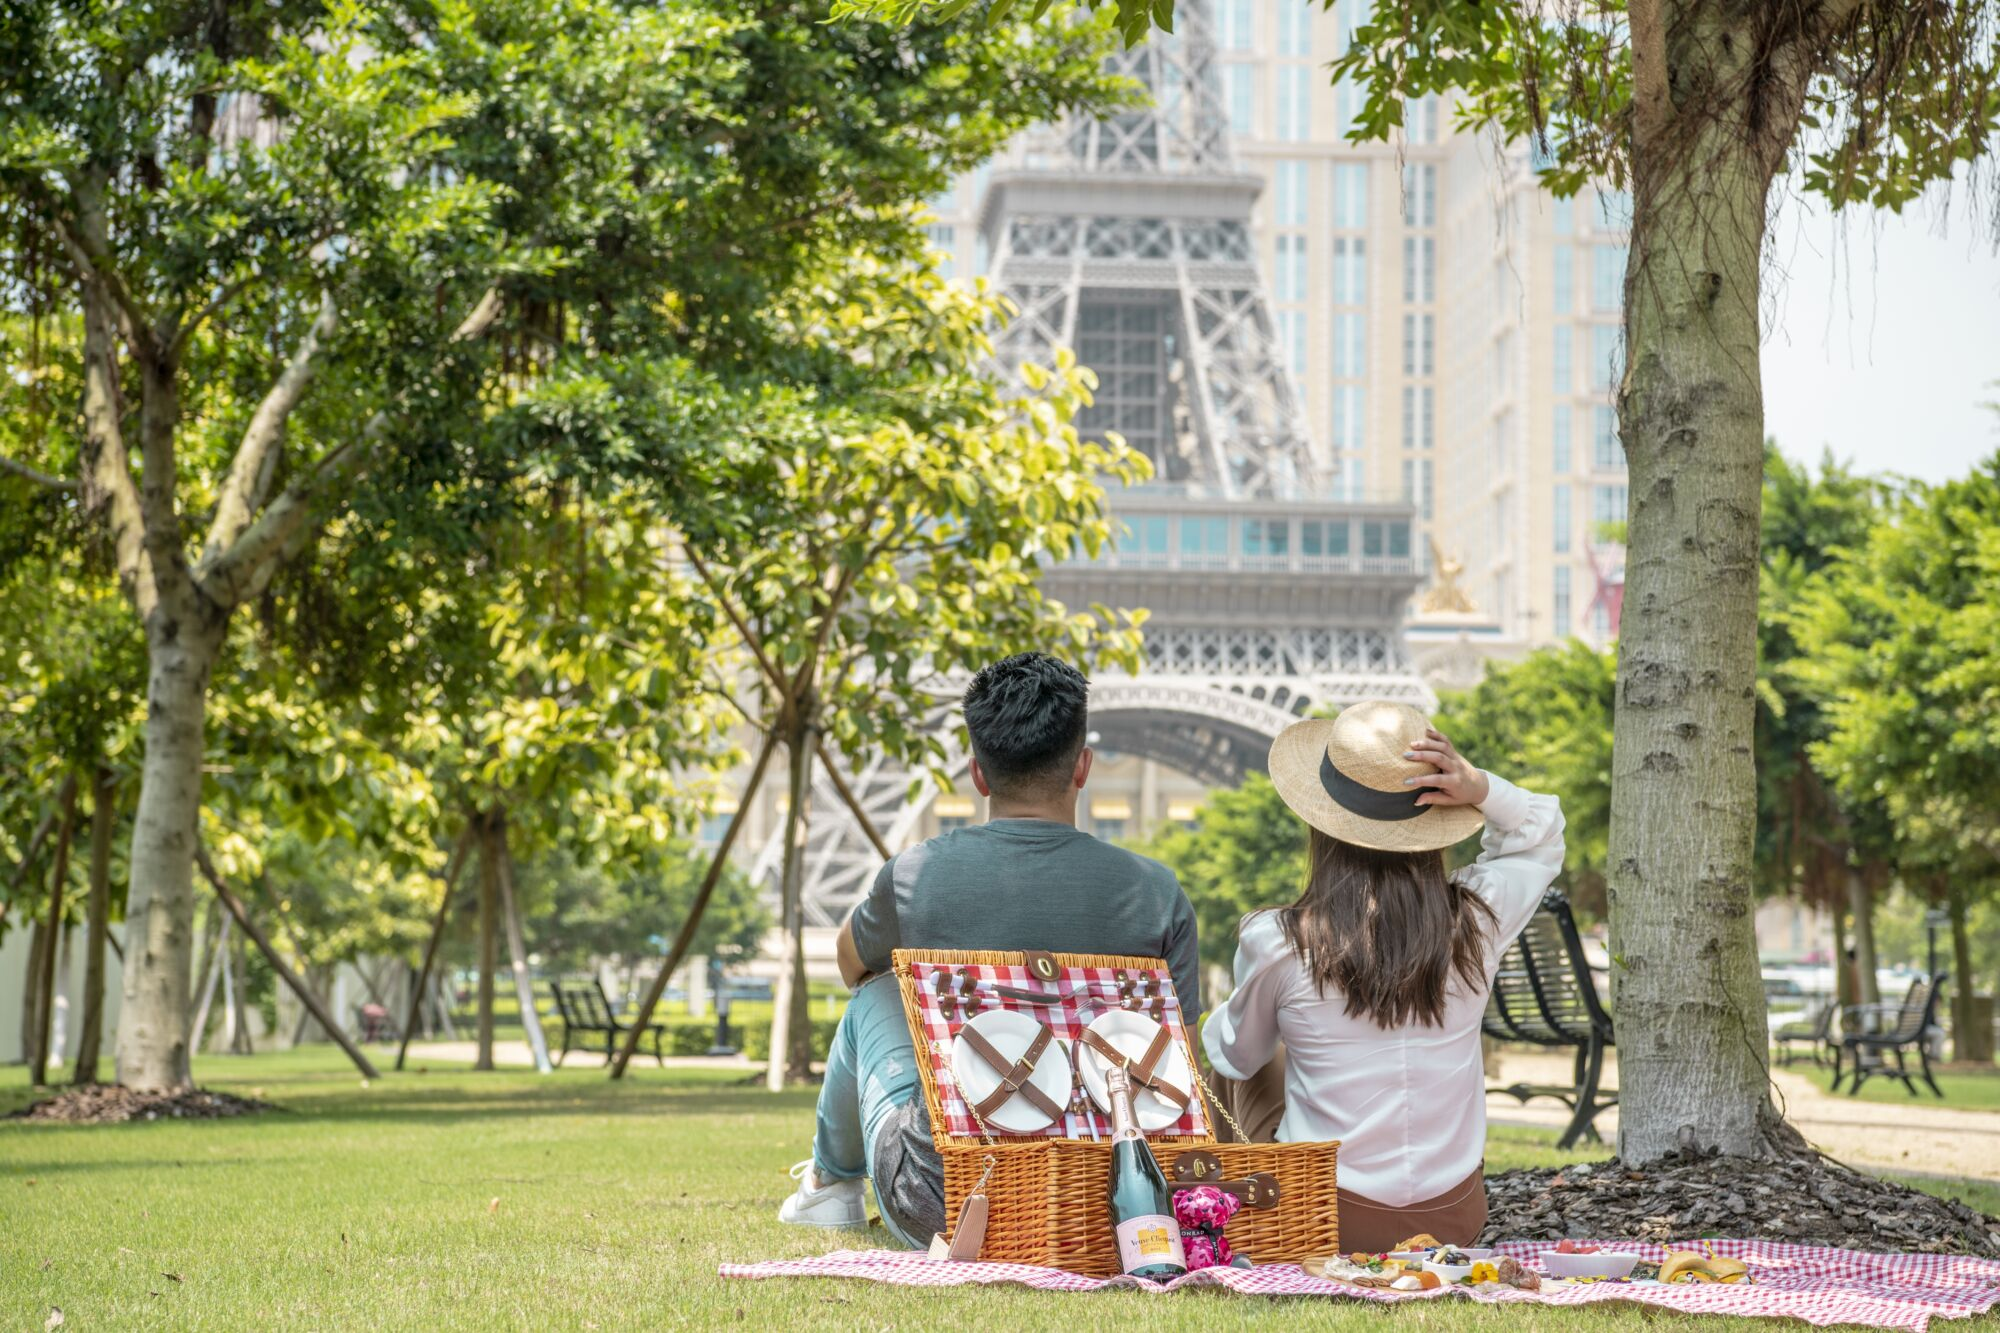 Picnic at Le Jardin Horizontal The Parisian Macao